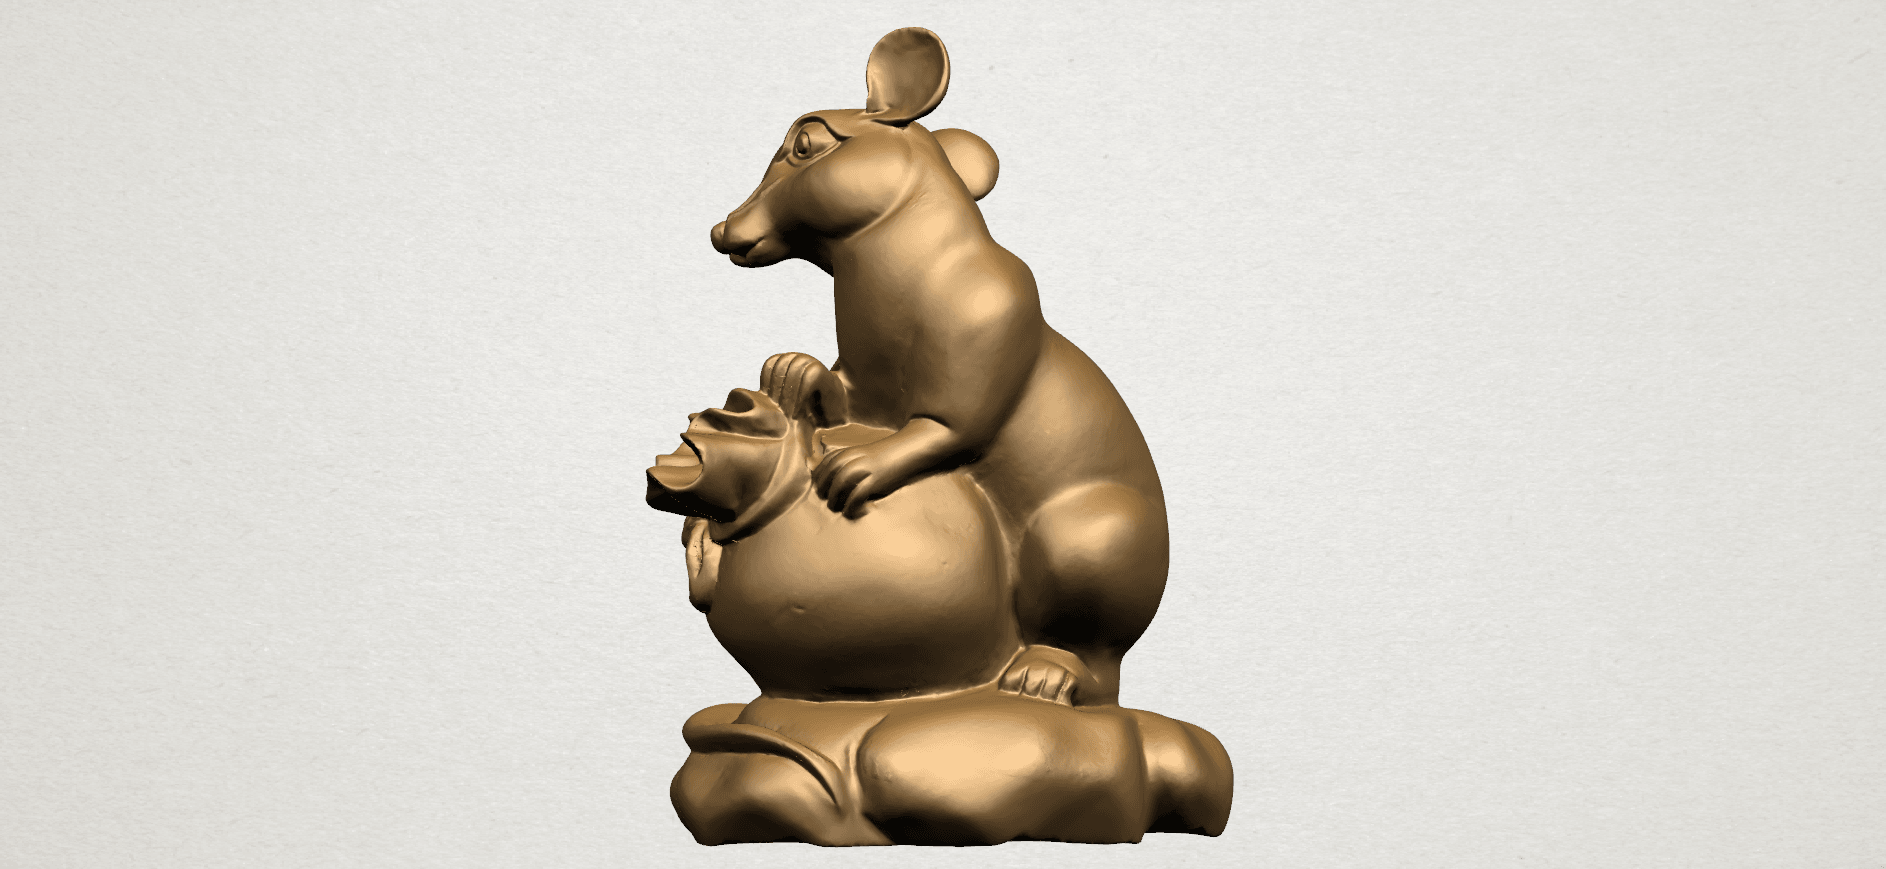 Chinese Horoscope01-A01.png Download free STL file Chinese Horoscope 01 Rat • 3D printing object, GeorgesNikkei